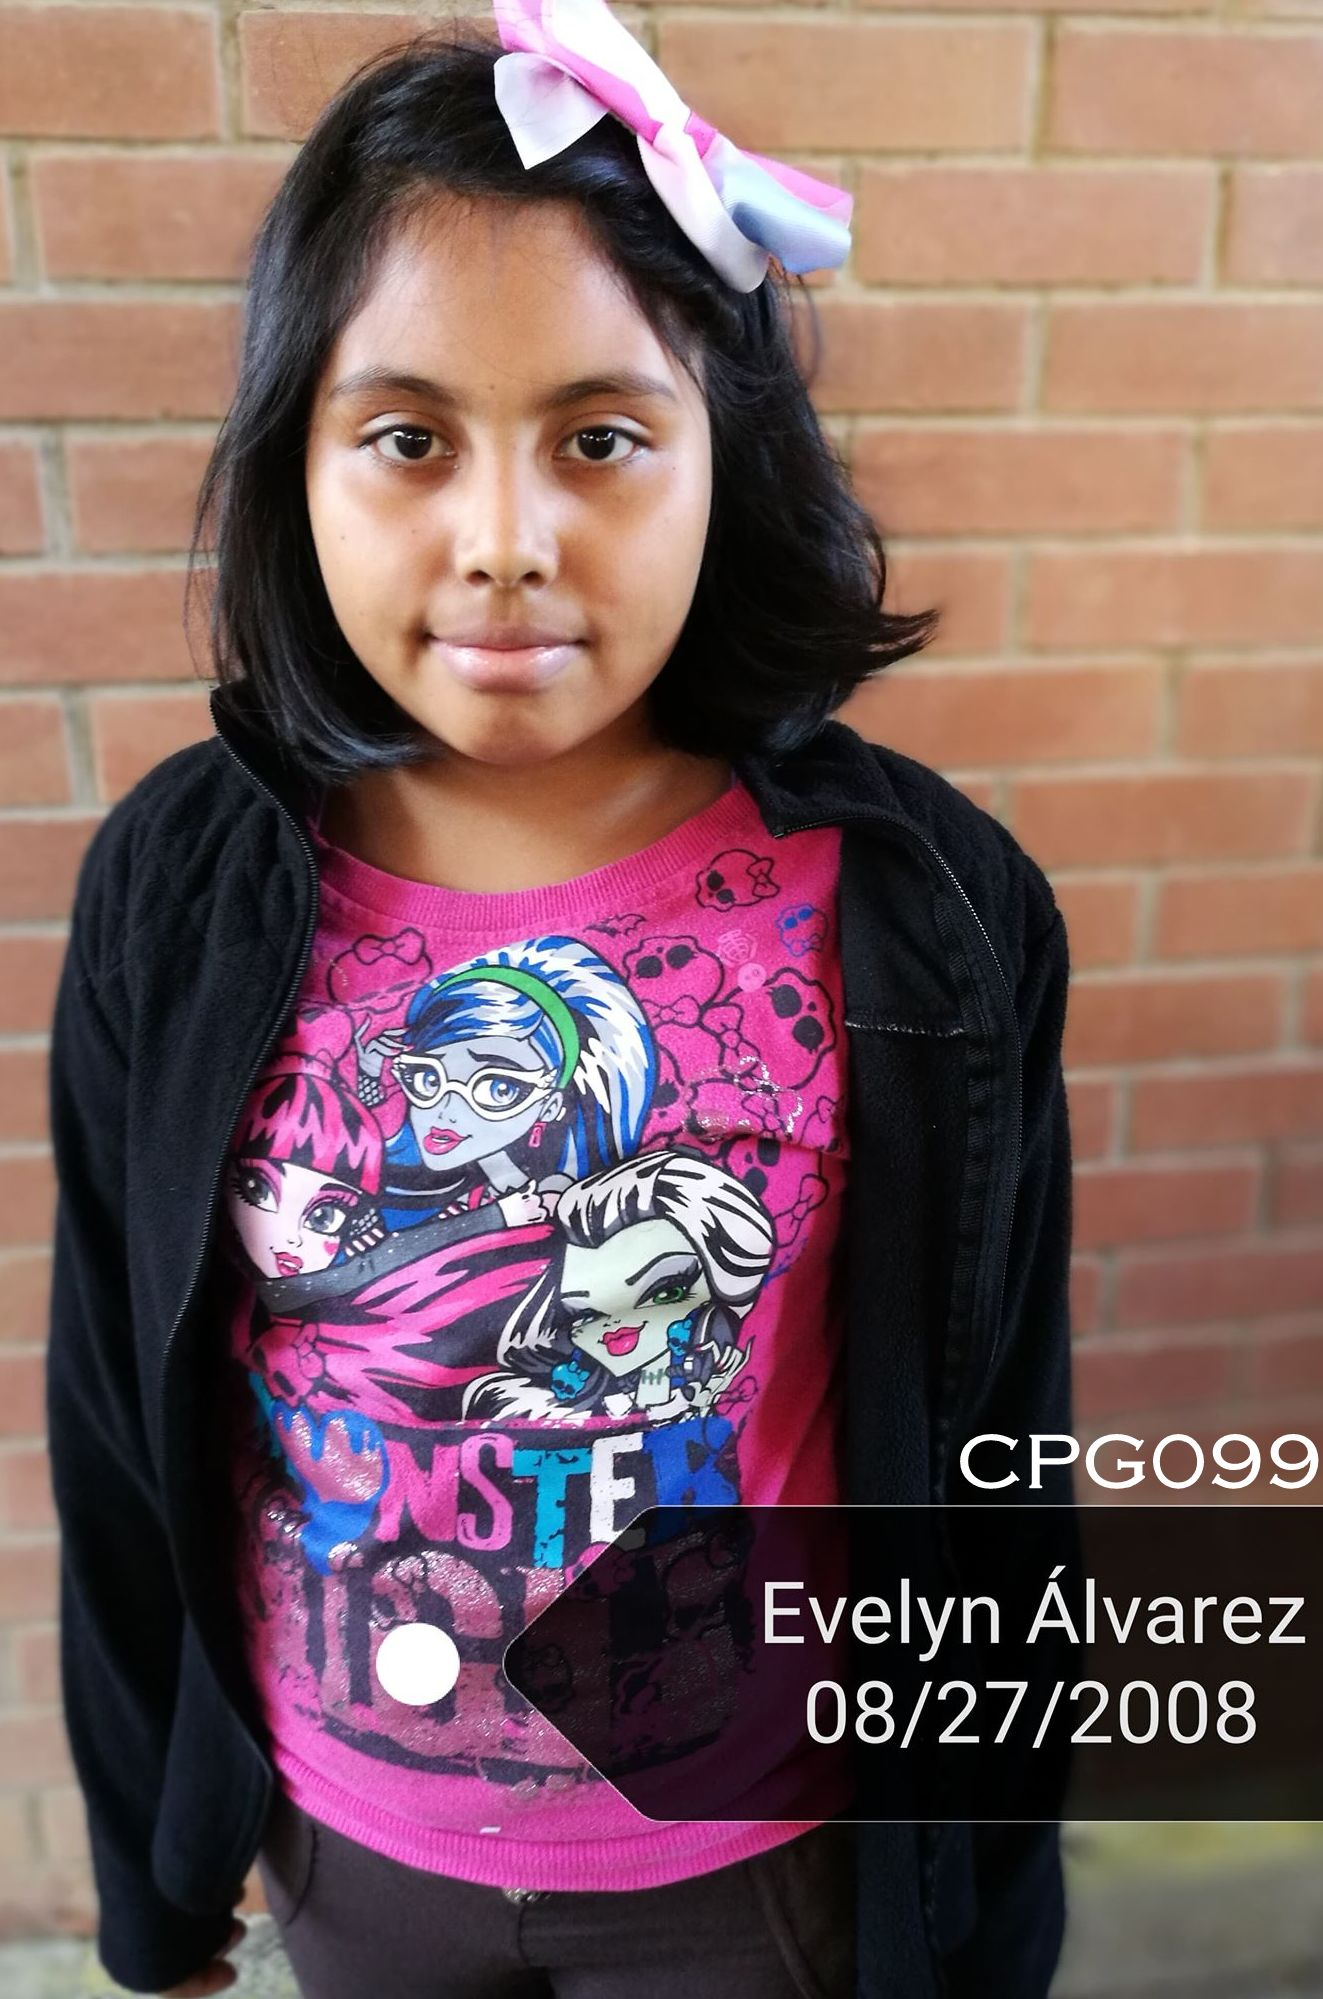 CPG099 Evelyn Alvarez 2.jpg